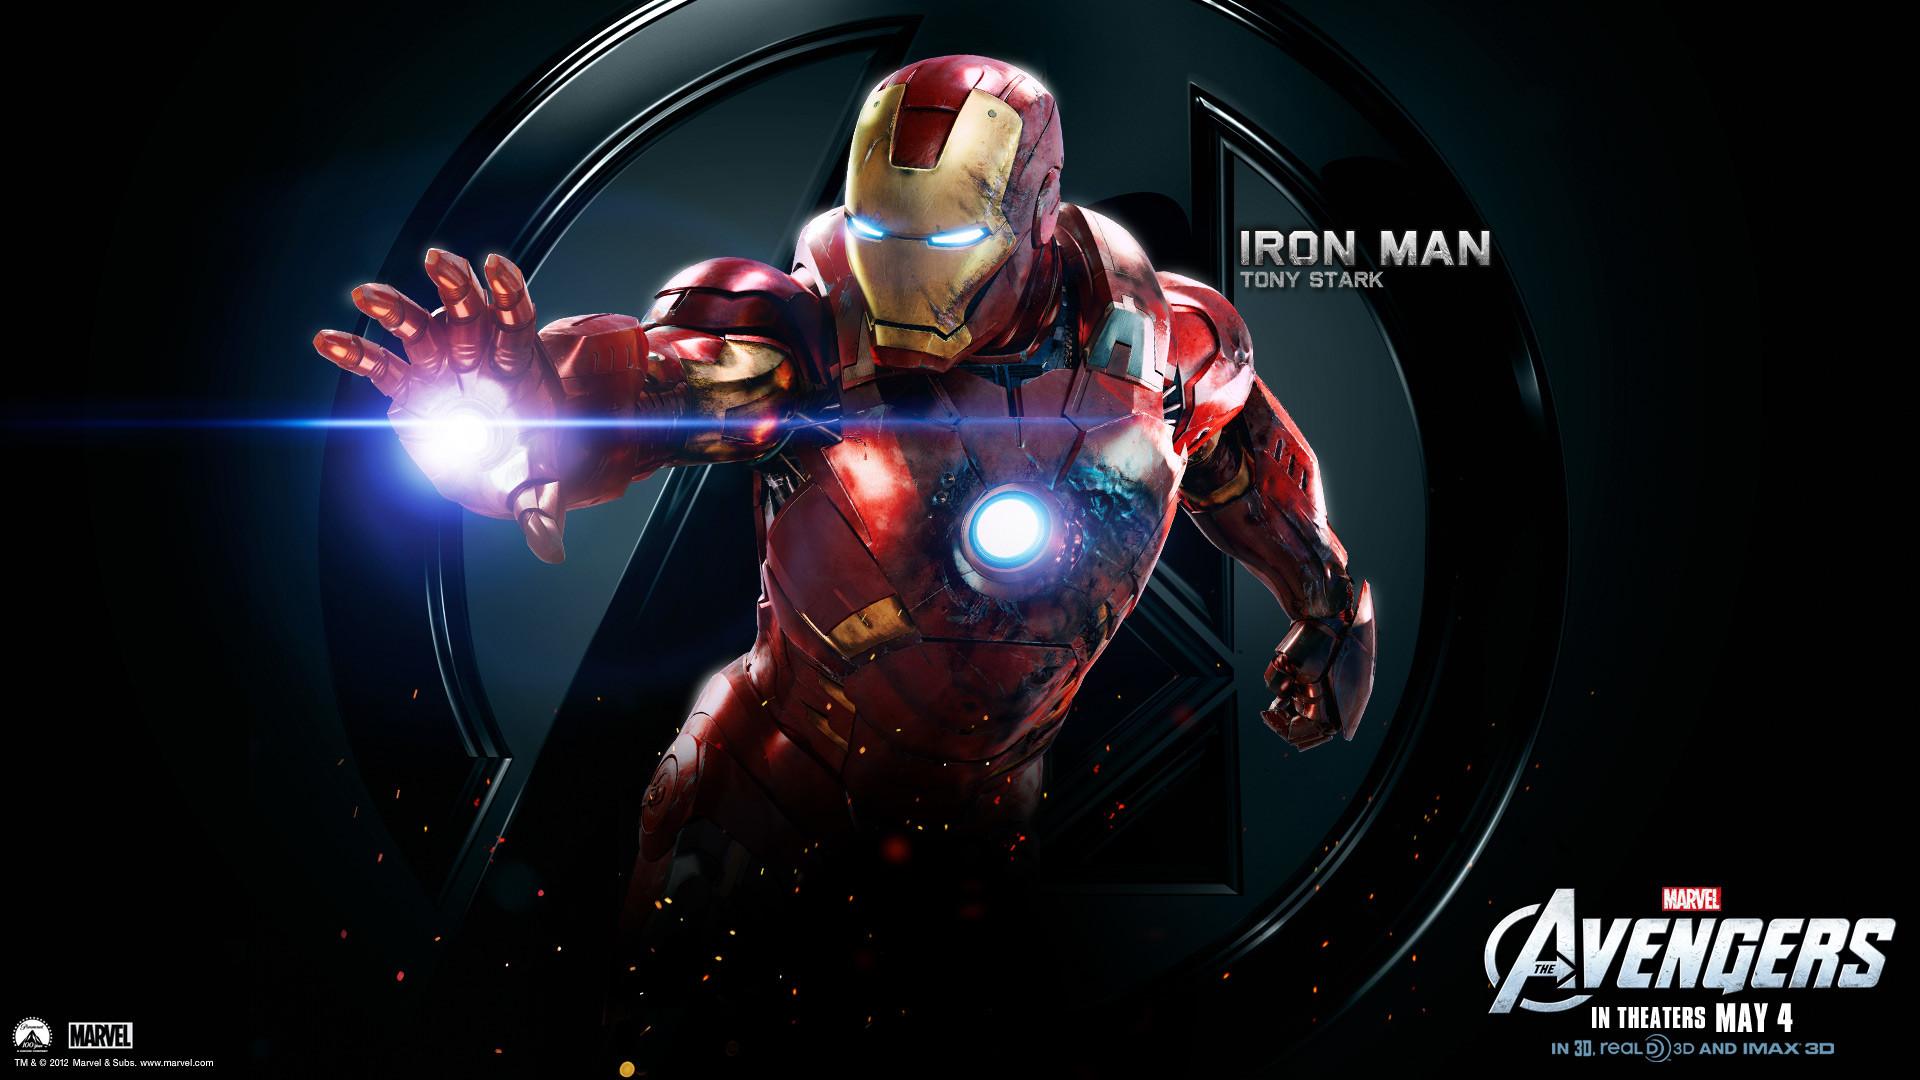 1920x1080 Iron Man in Avengers Movie wallpapers (78 Wallpapers)